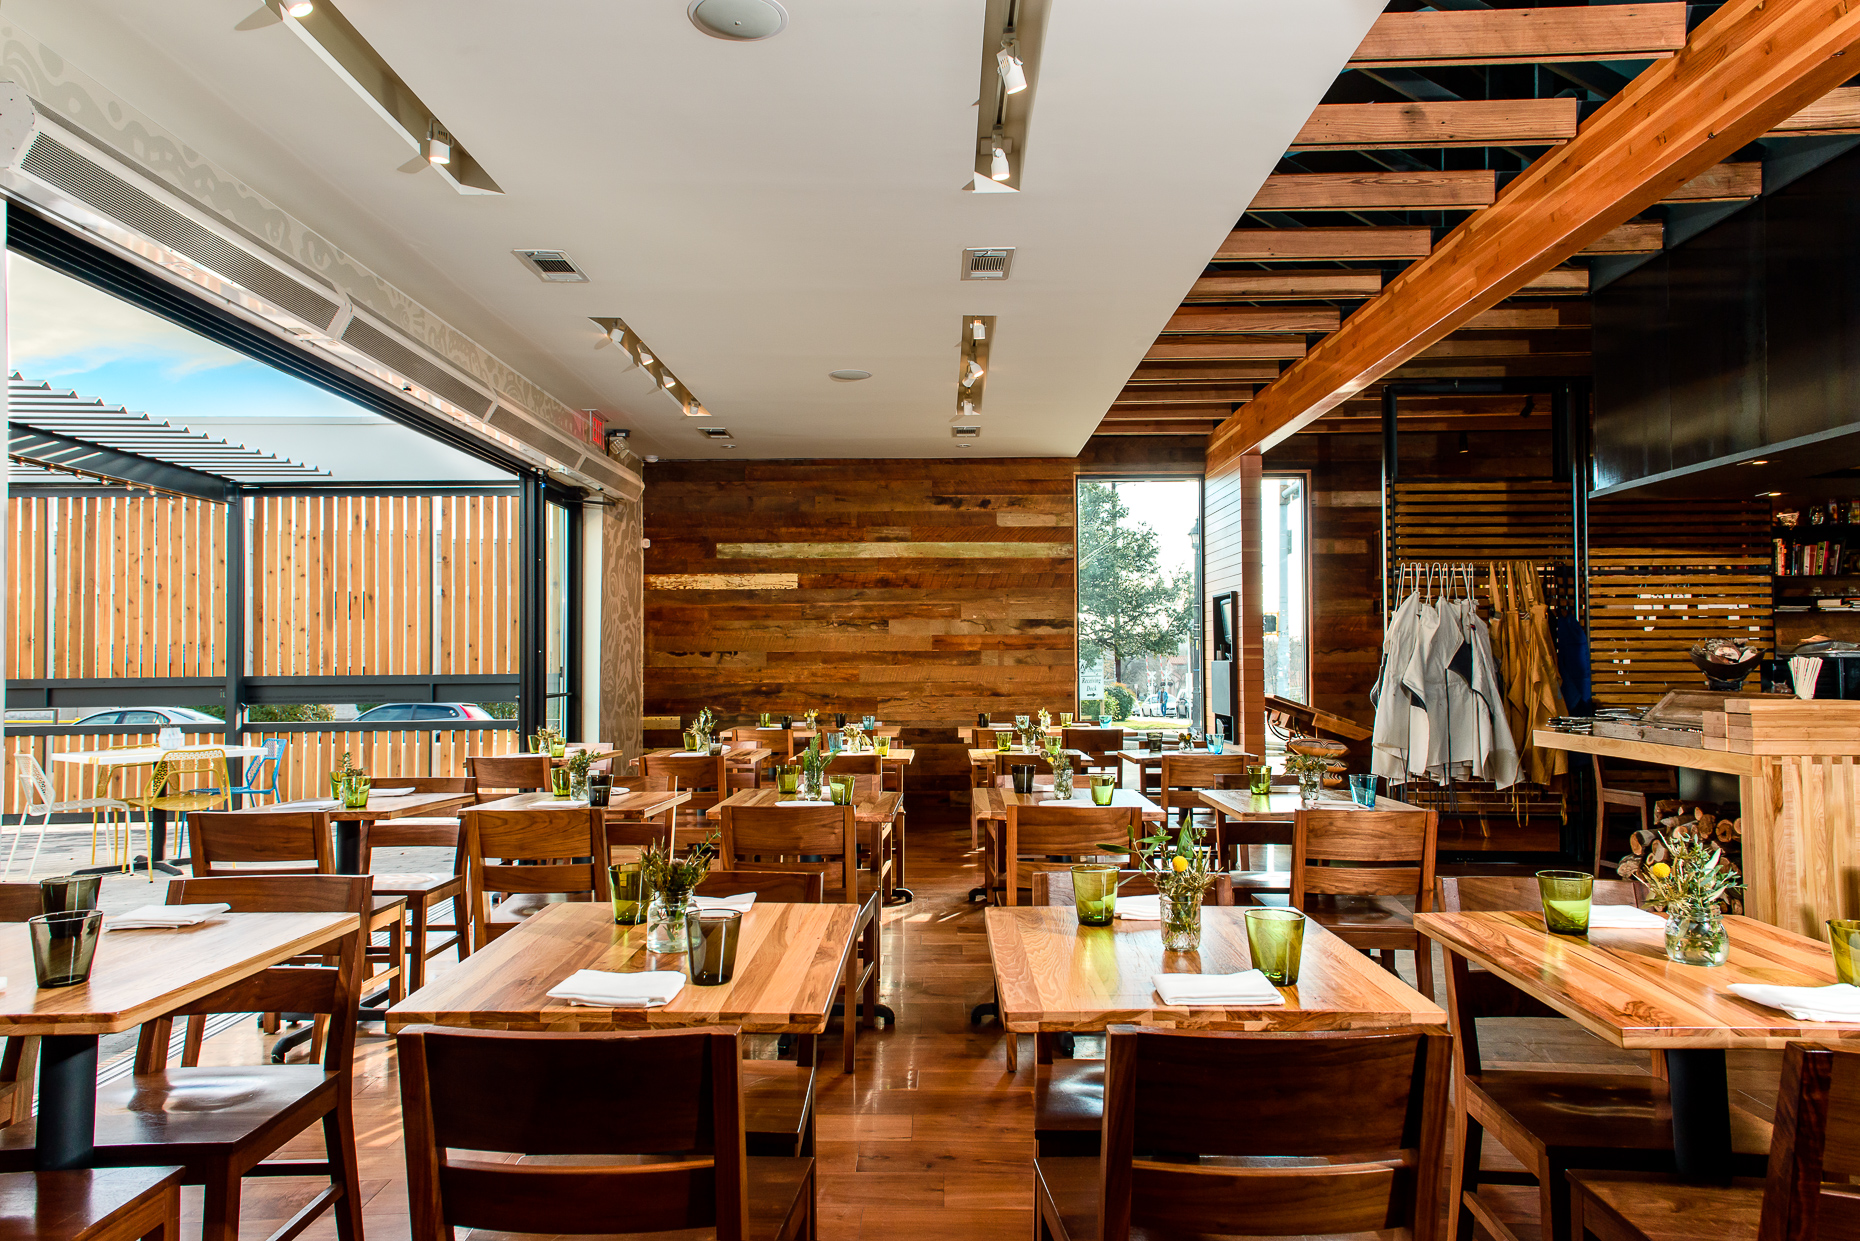 Austin-Commercial-Photographers-Architectural-Interior-Design-Qui-Restaurant